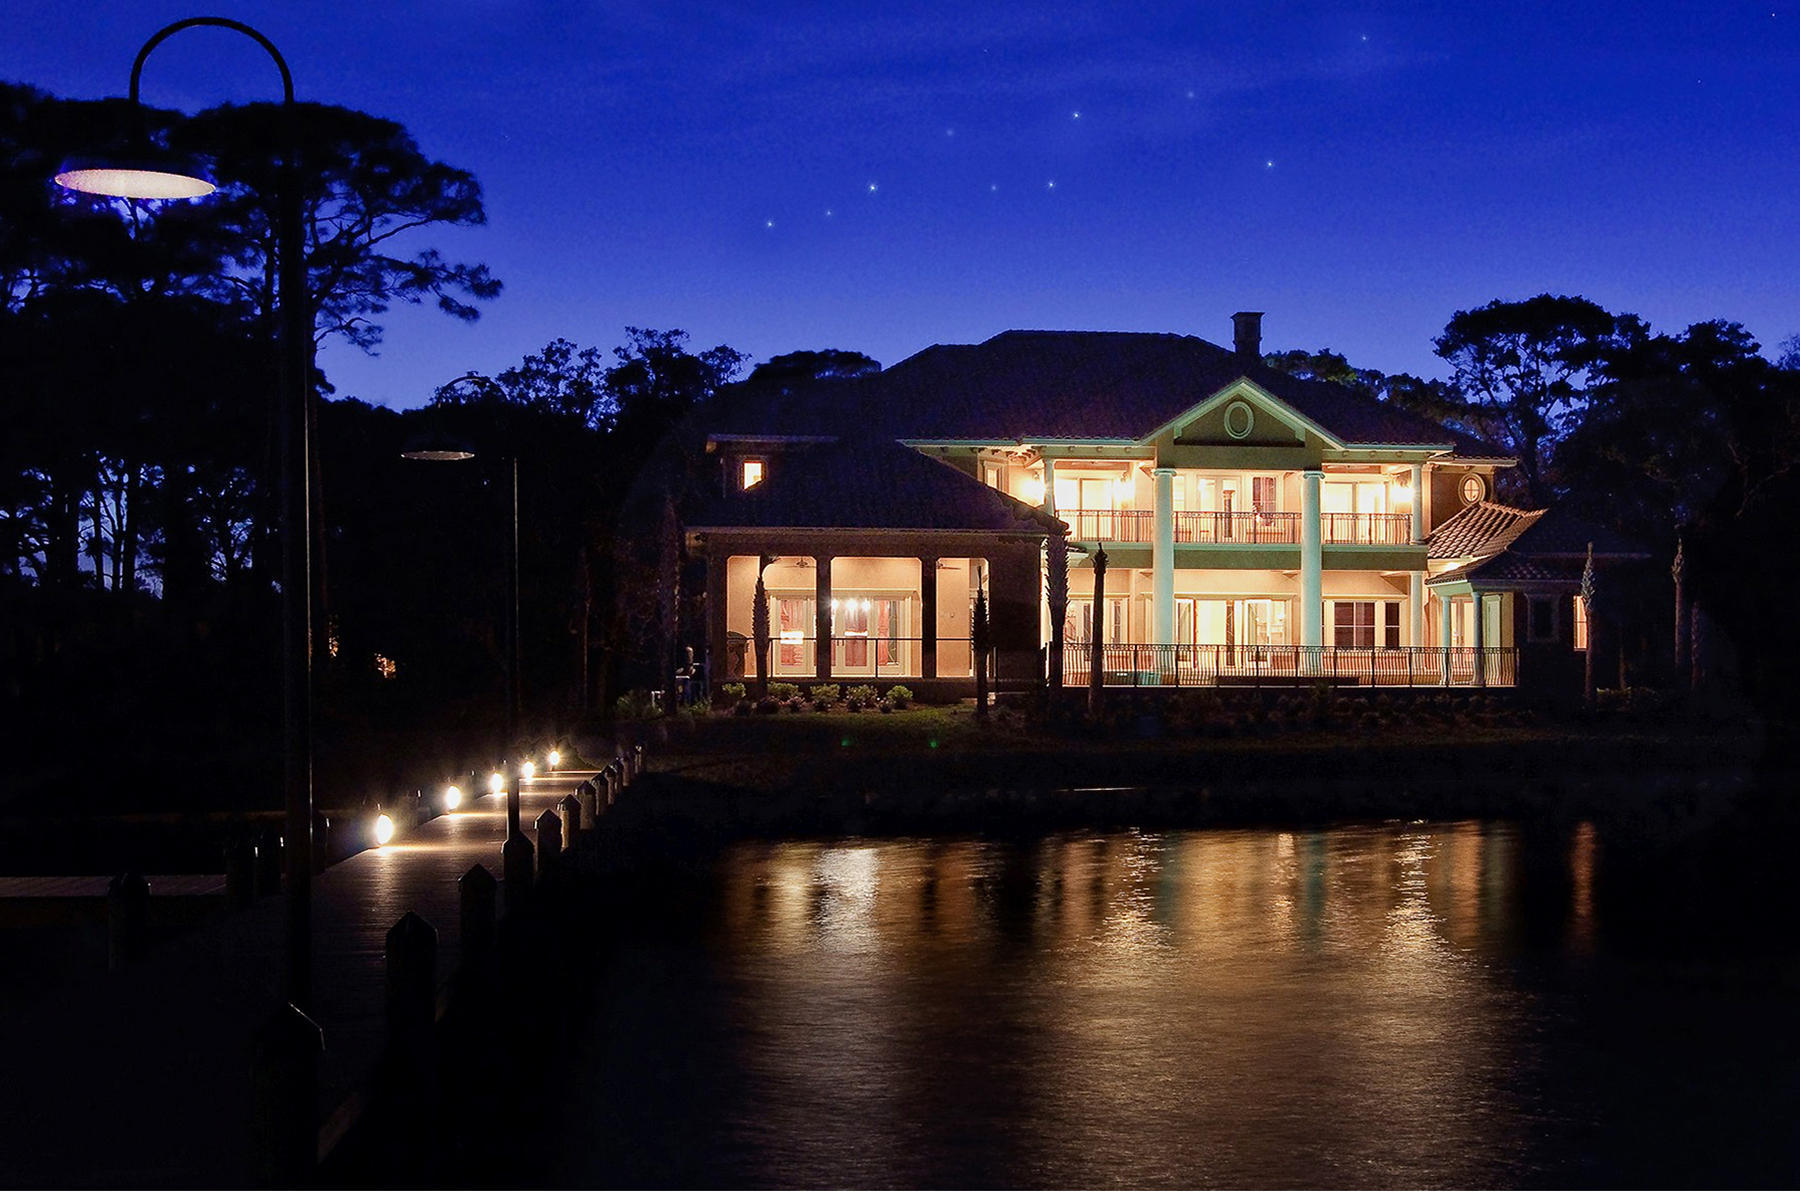 Single Family Home for Sale at THE PINNACLE OF LUXURY WATERFRONT LIVING 4145 Belcourt Dr Destin, Florida 32541 United States